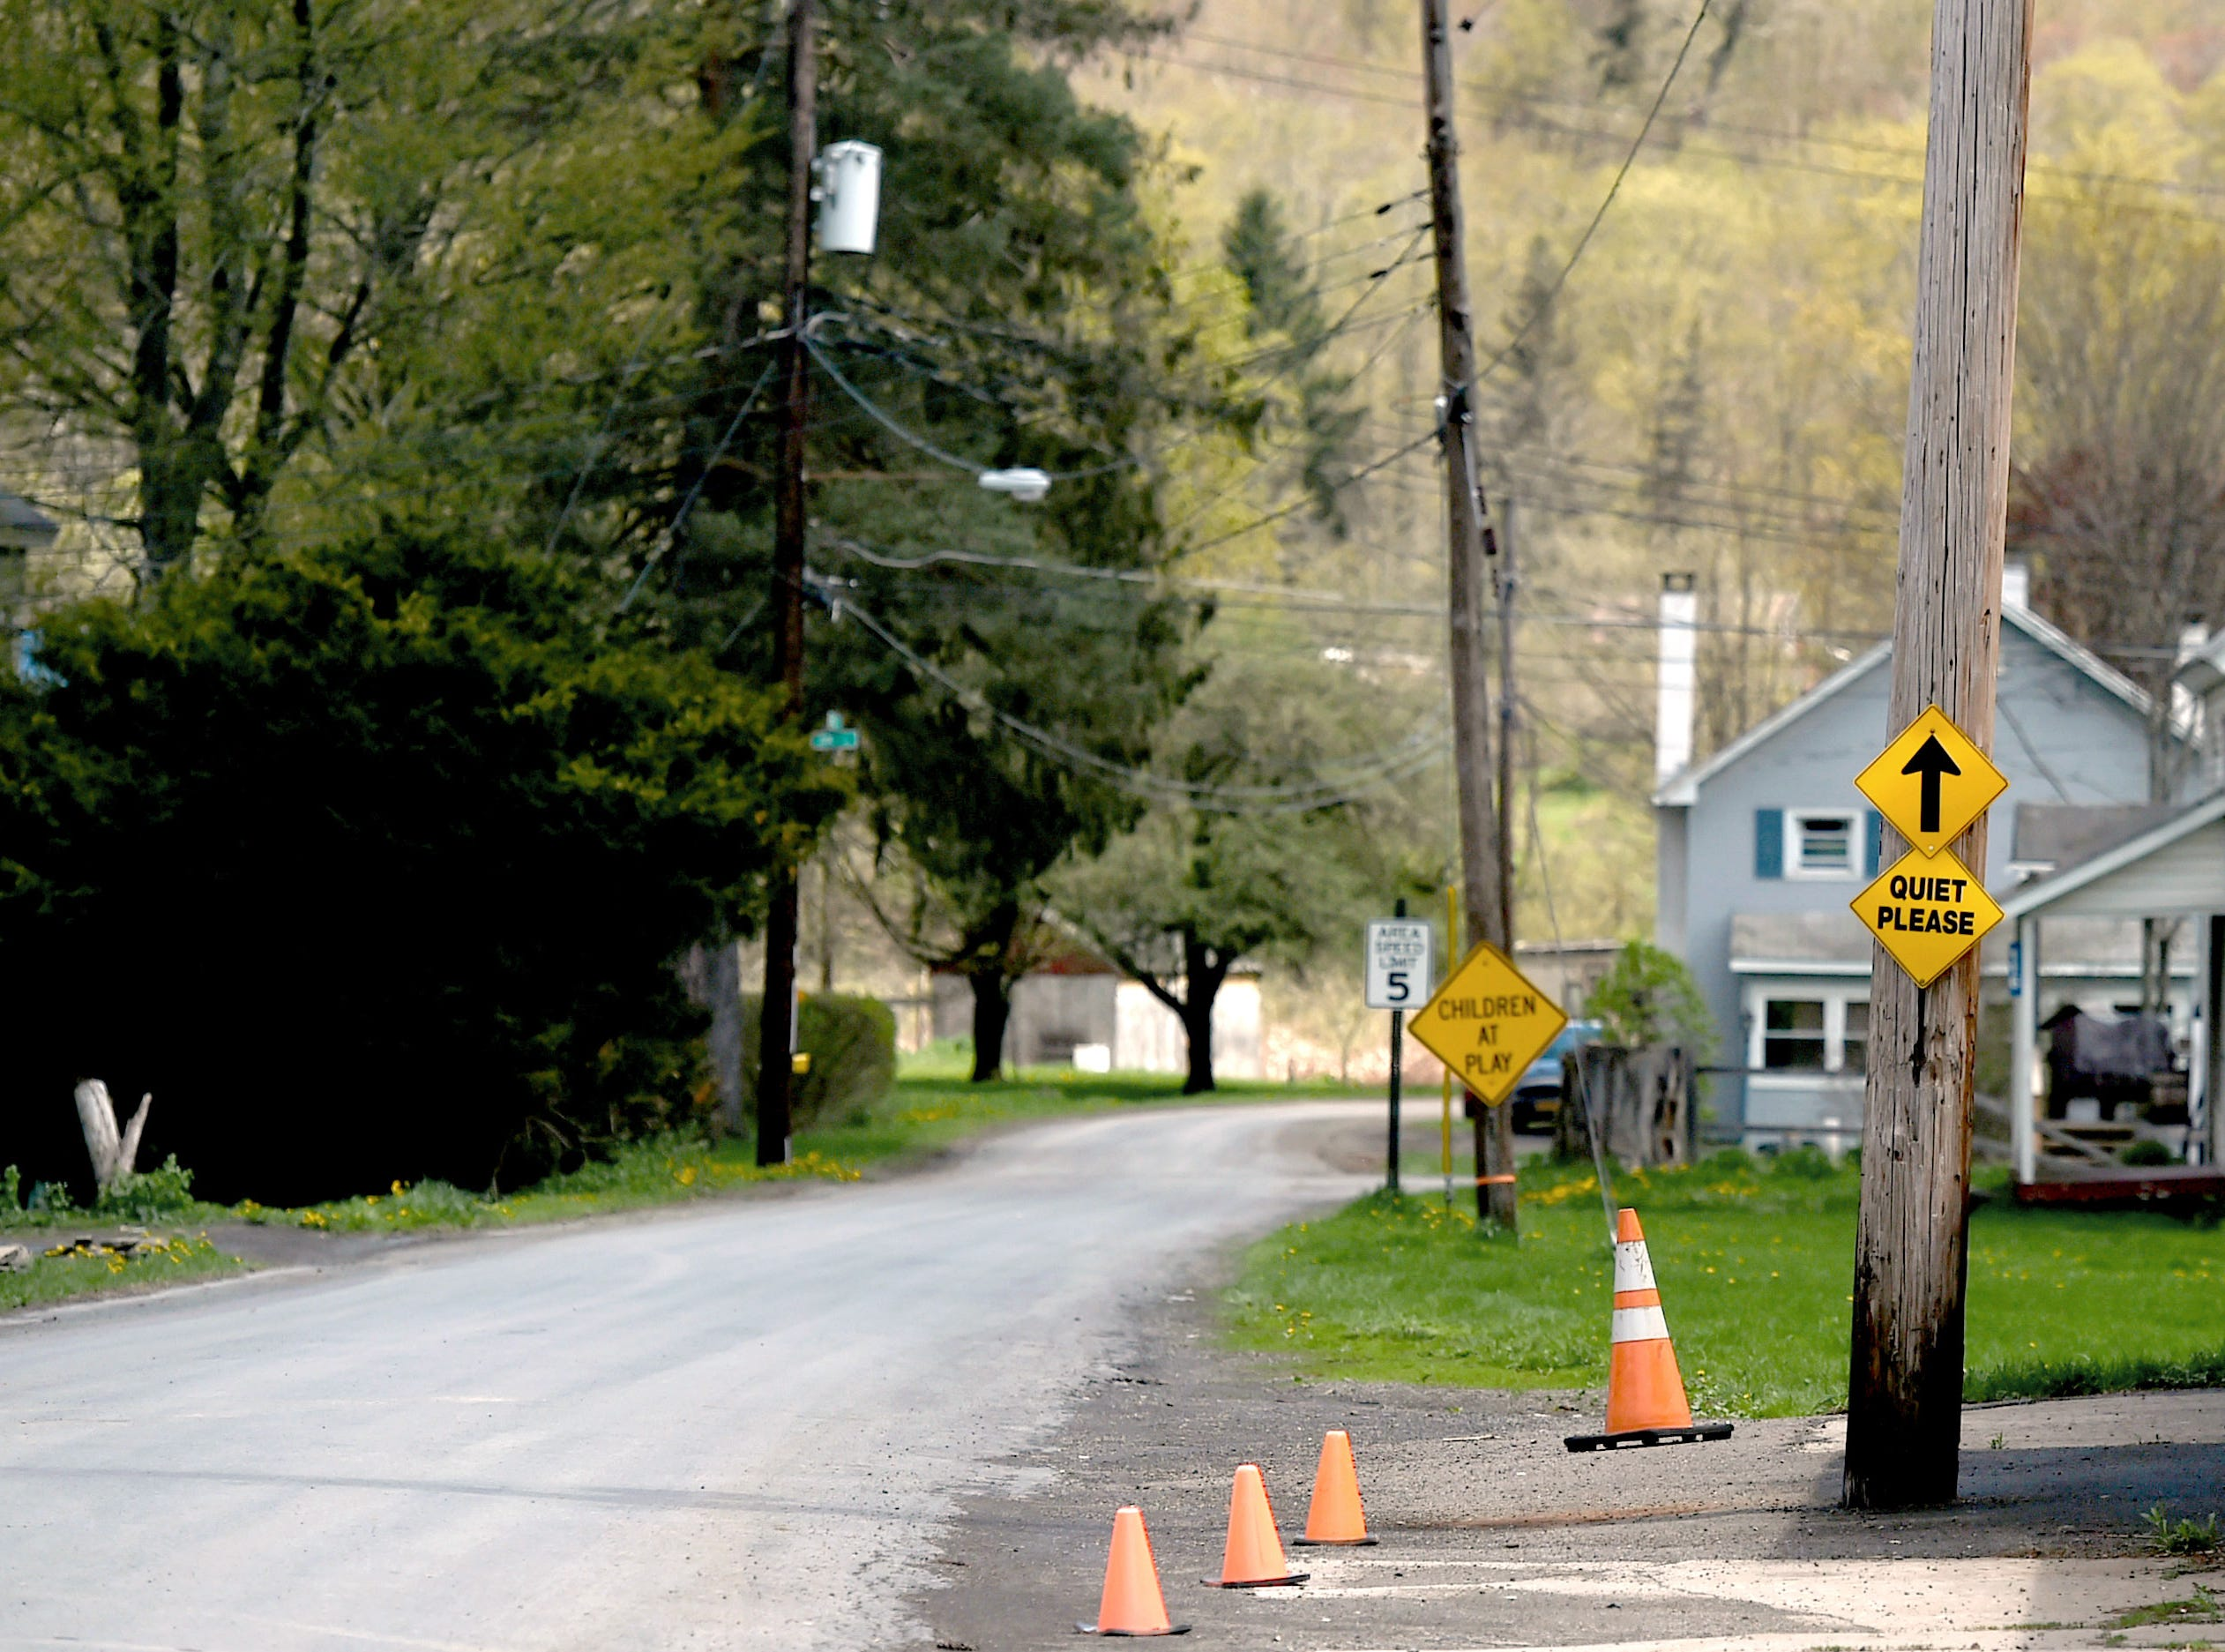 Water St. in Smithville Flats, Chenango County. Amelia Wakefield, 16, was found dead inside a Water St. residence on Friday.